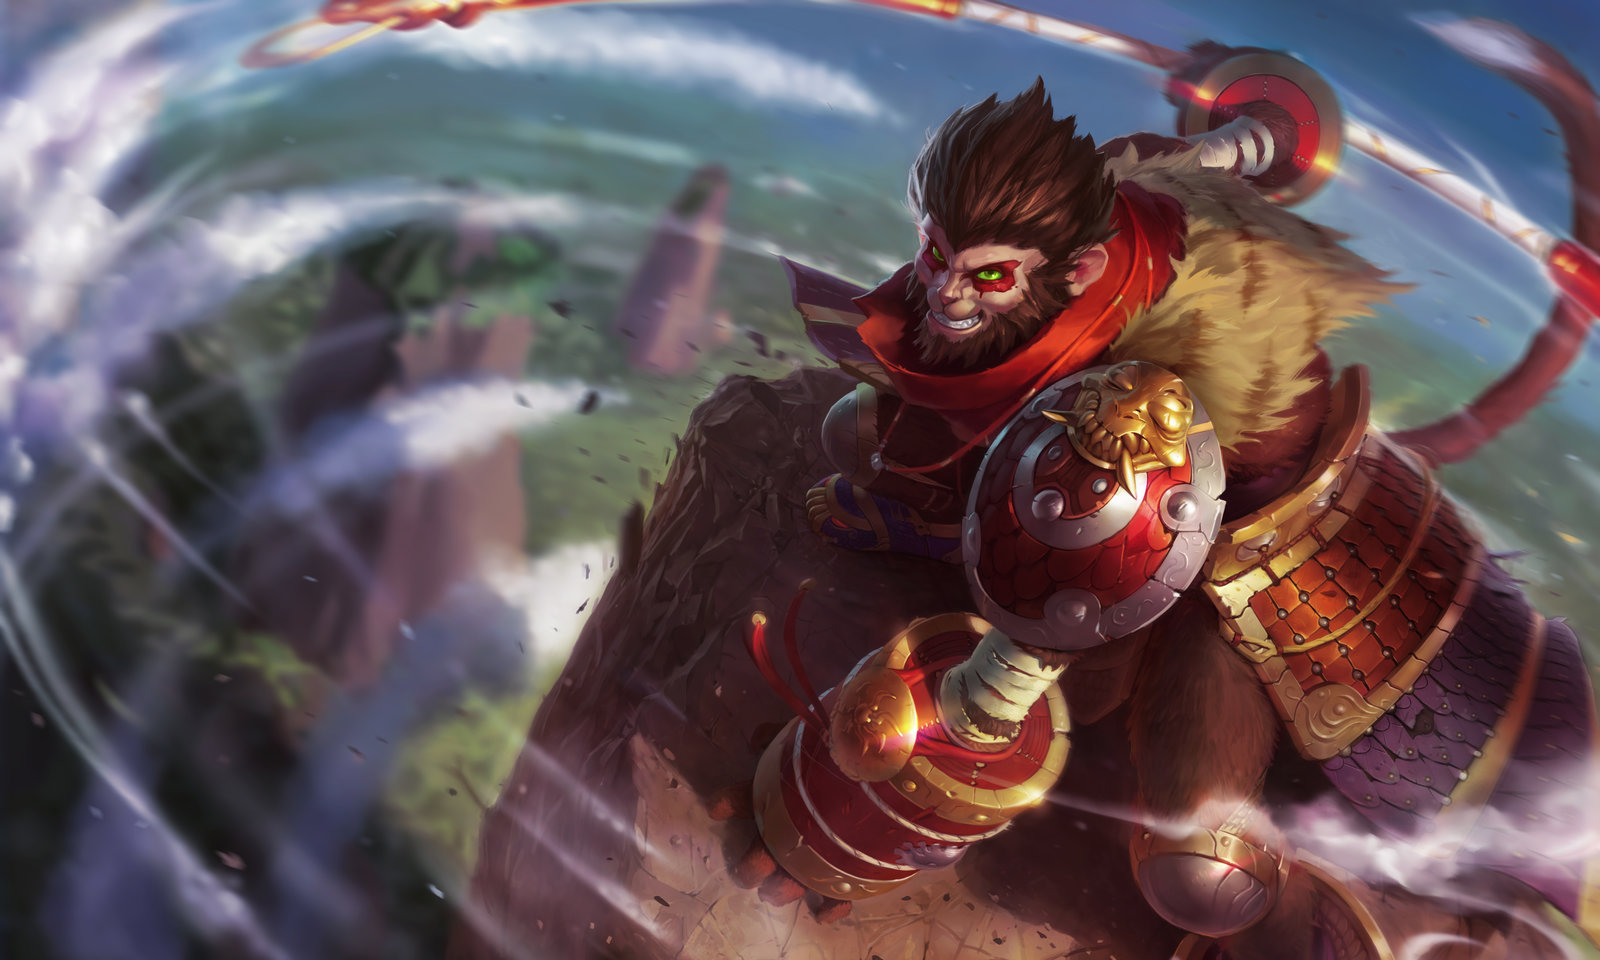 Wukong lands on the Rift too strong